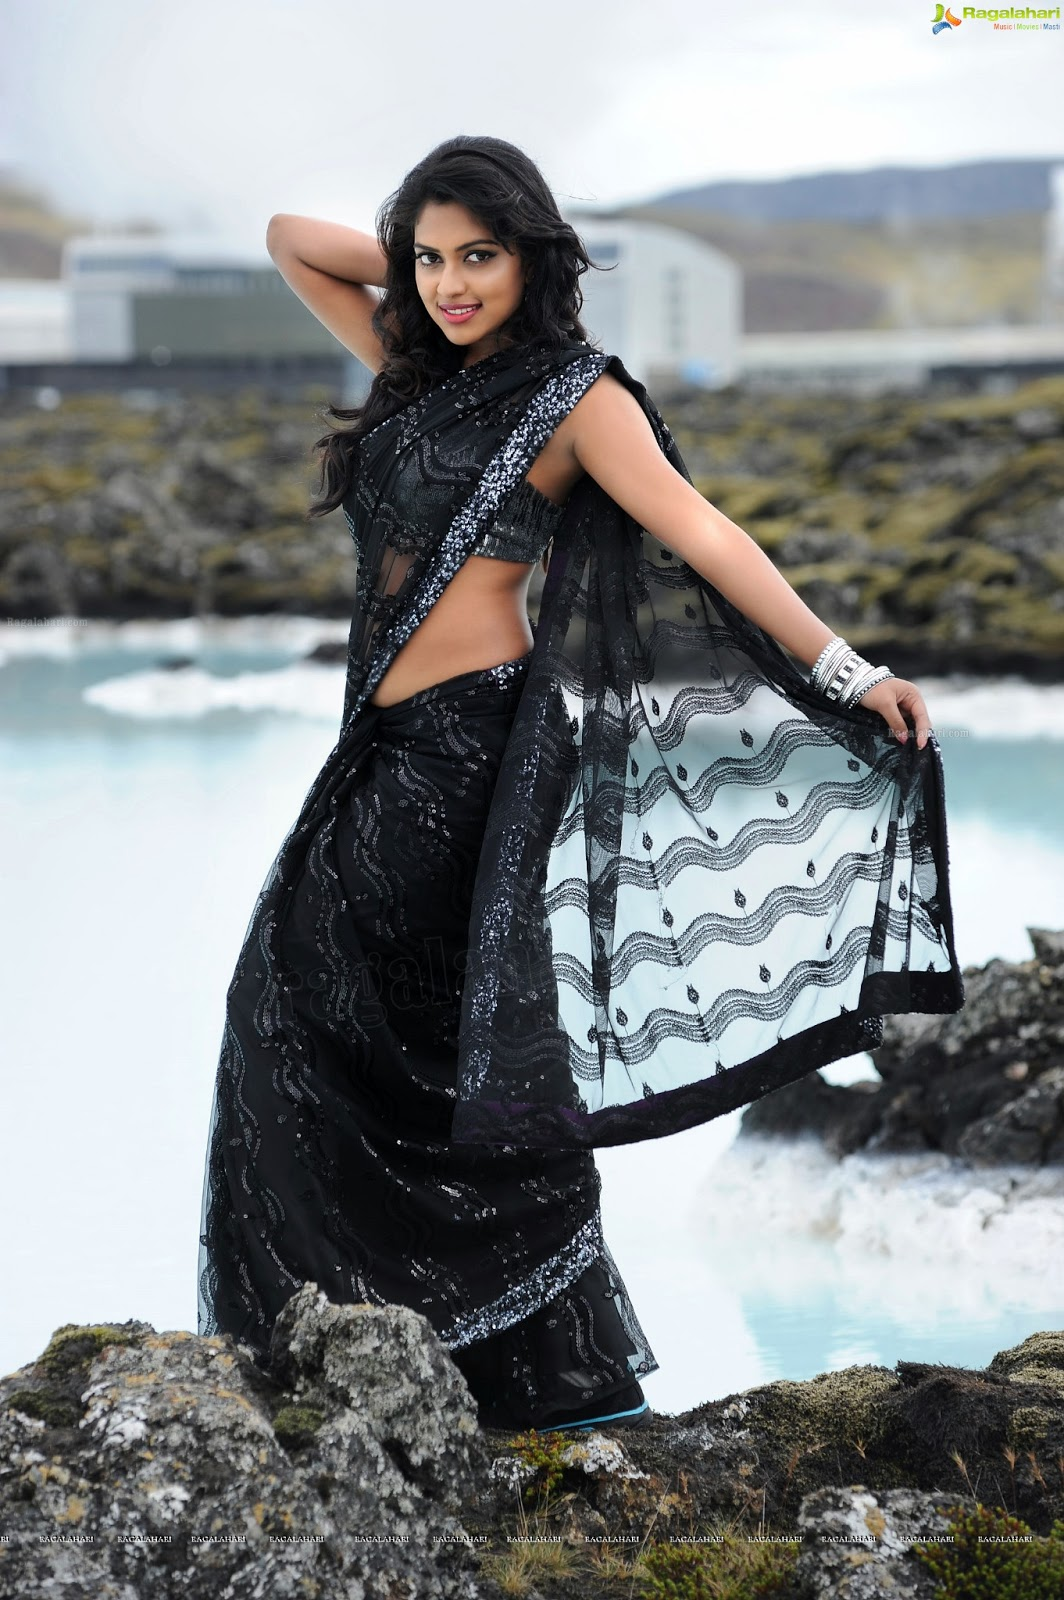 Amala paul hot wallpapers in nayak latest